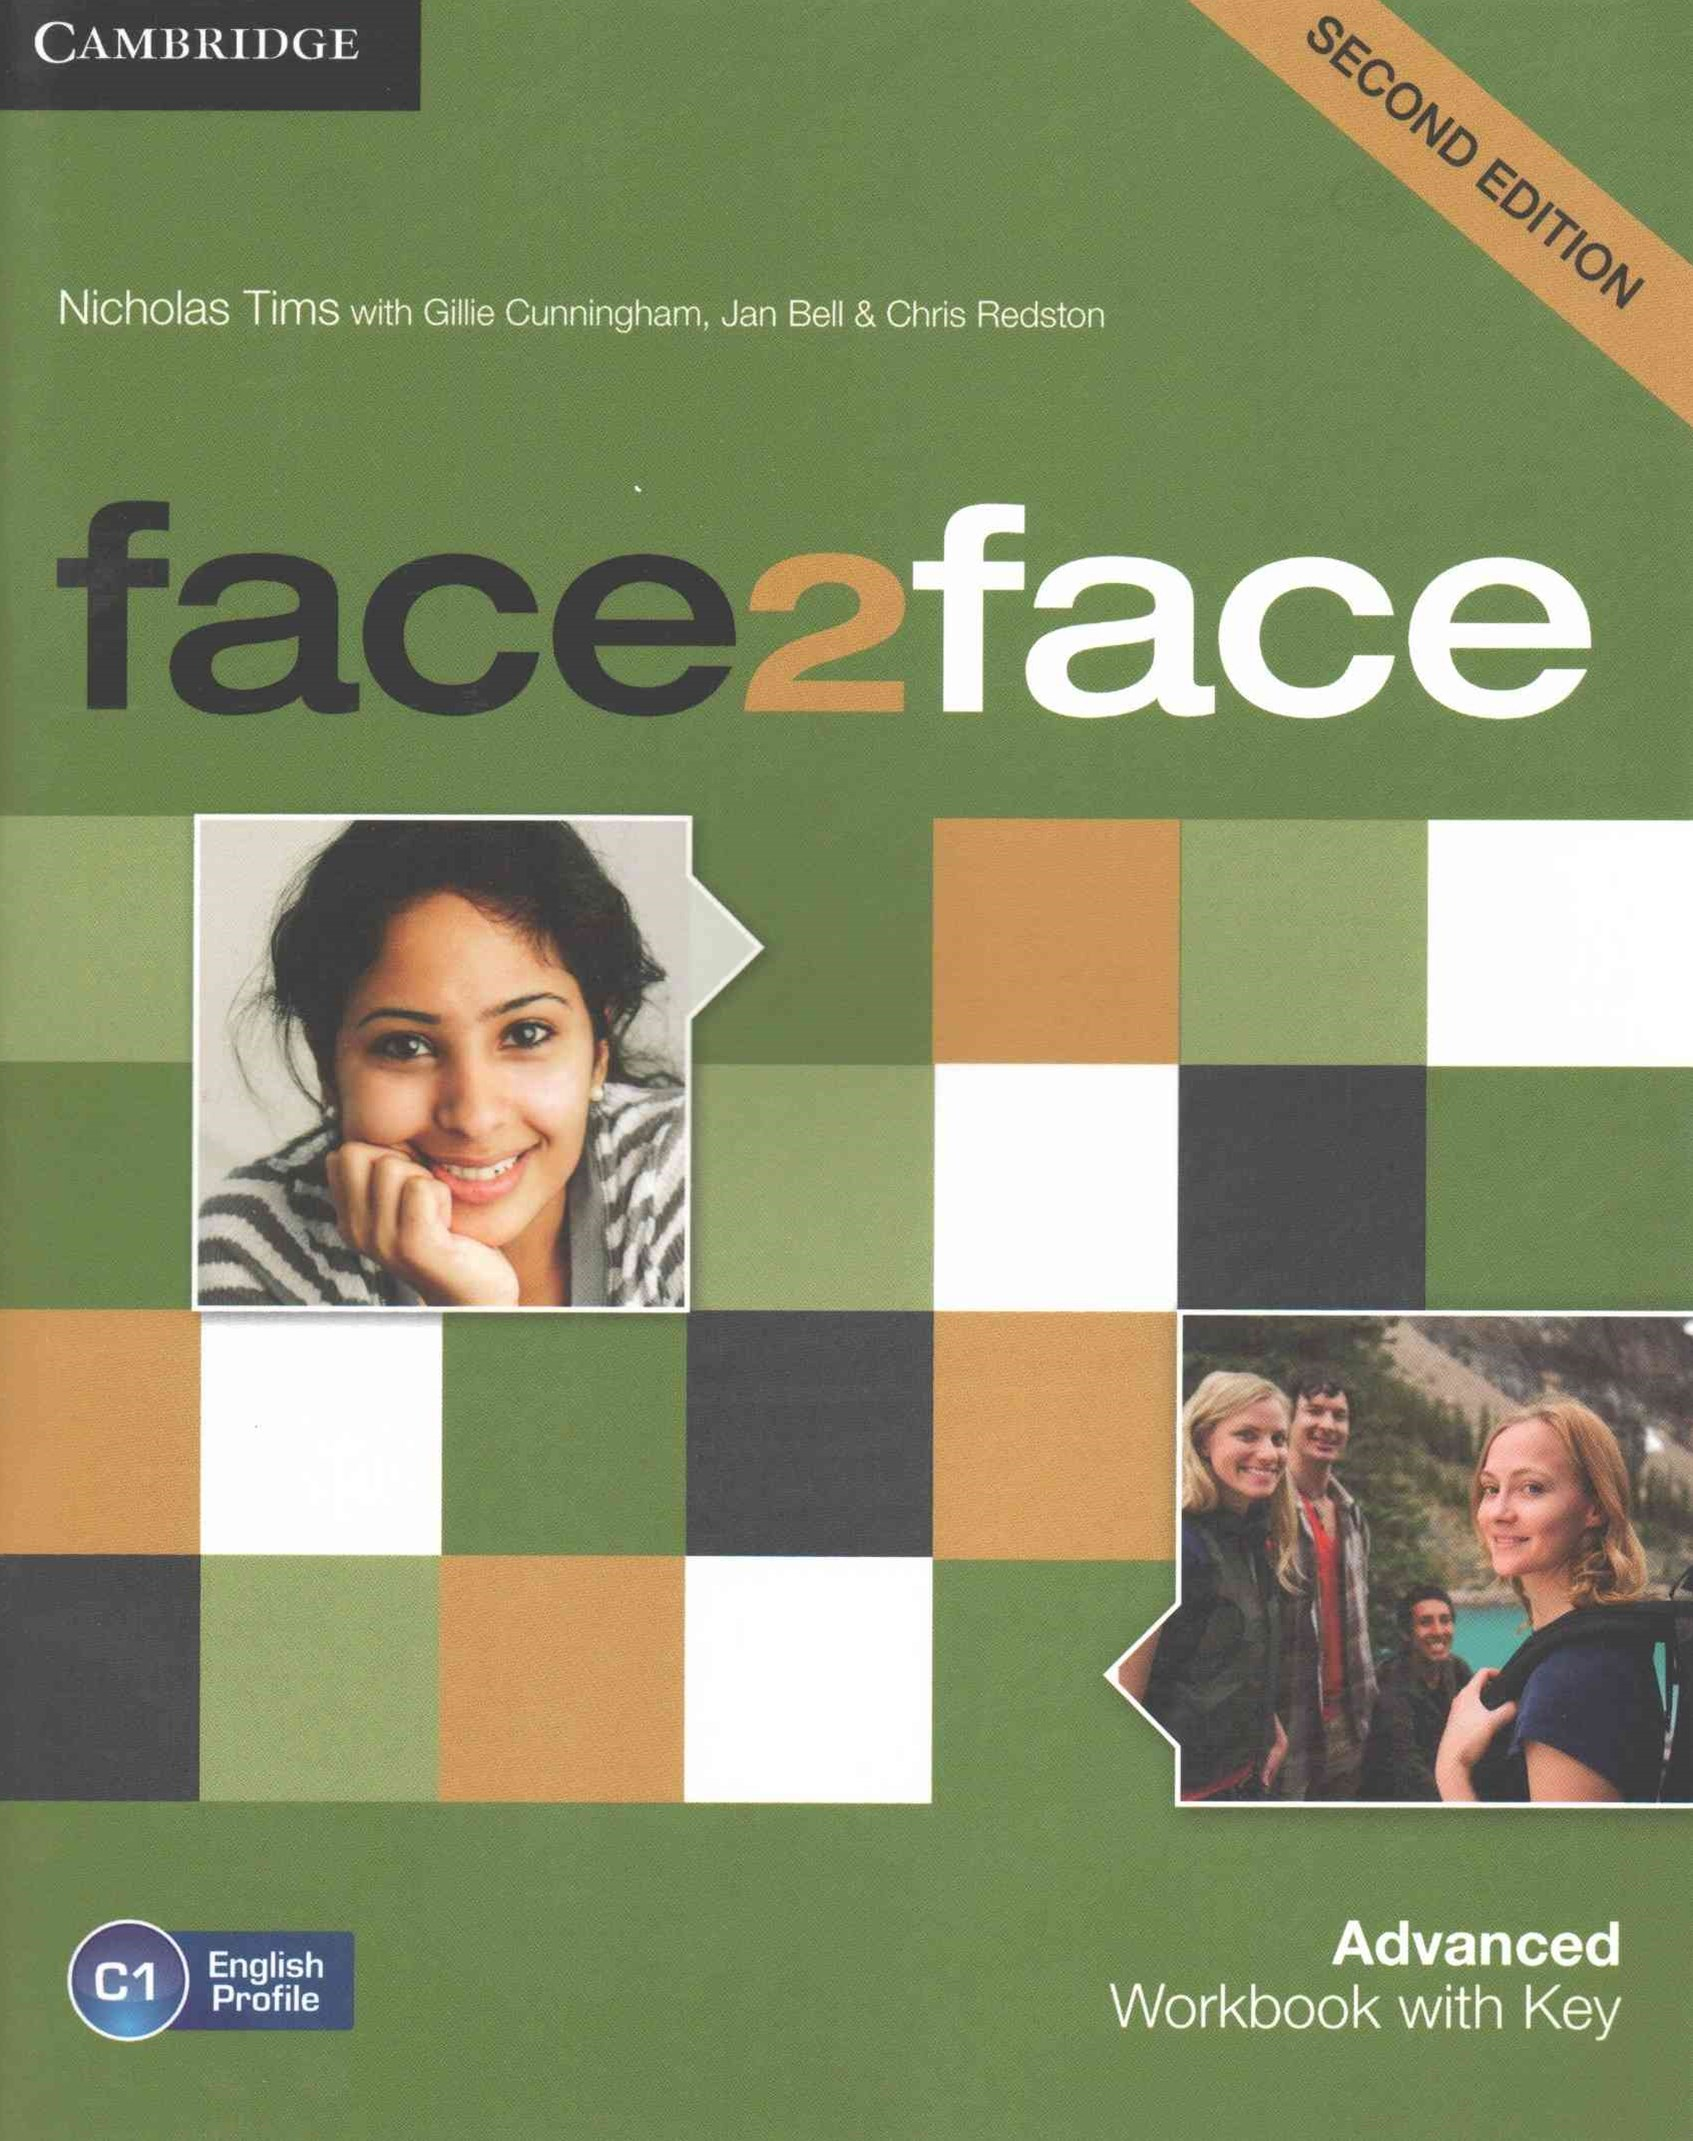 face2face Advanced Workbook with Key